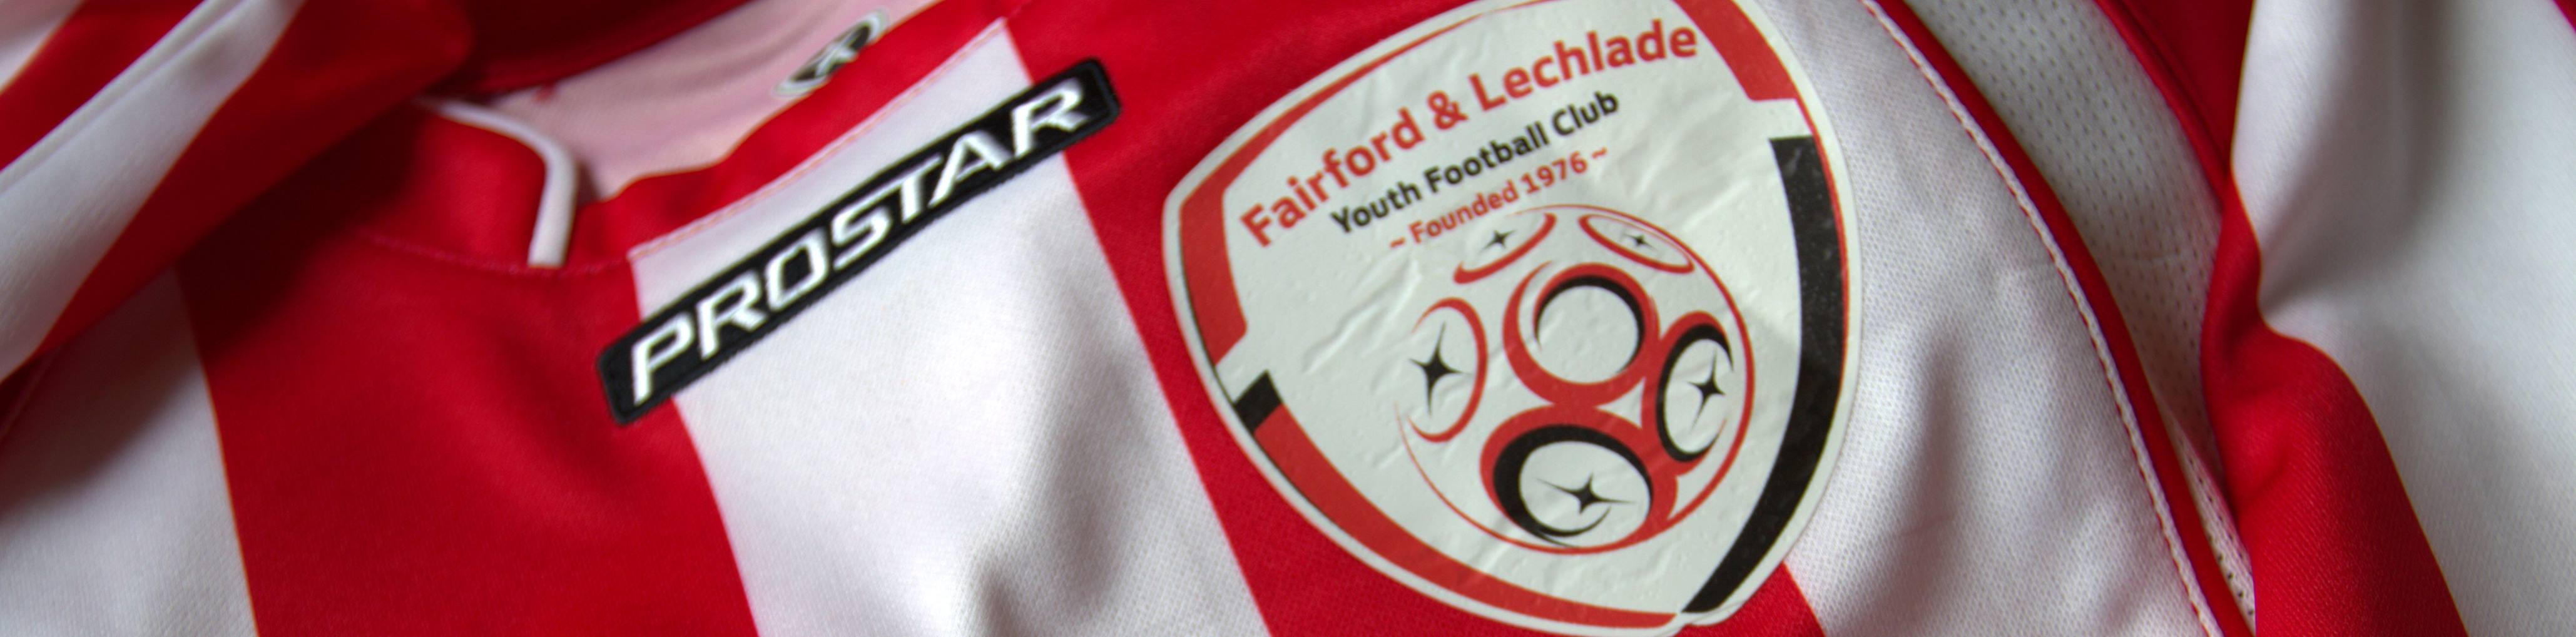 Fairford Youth Football Club